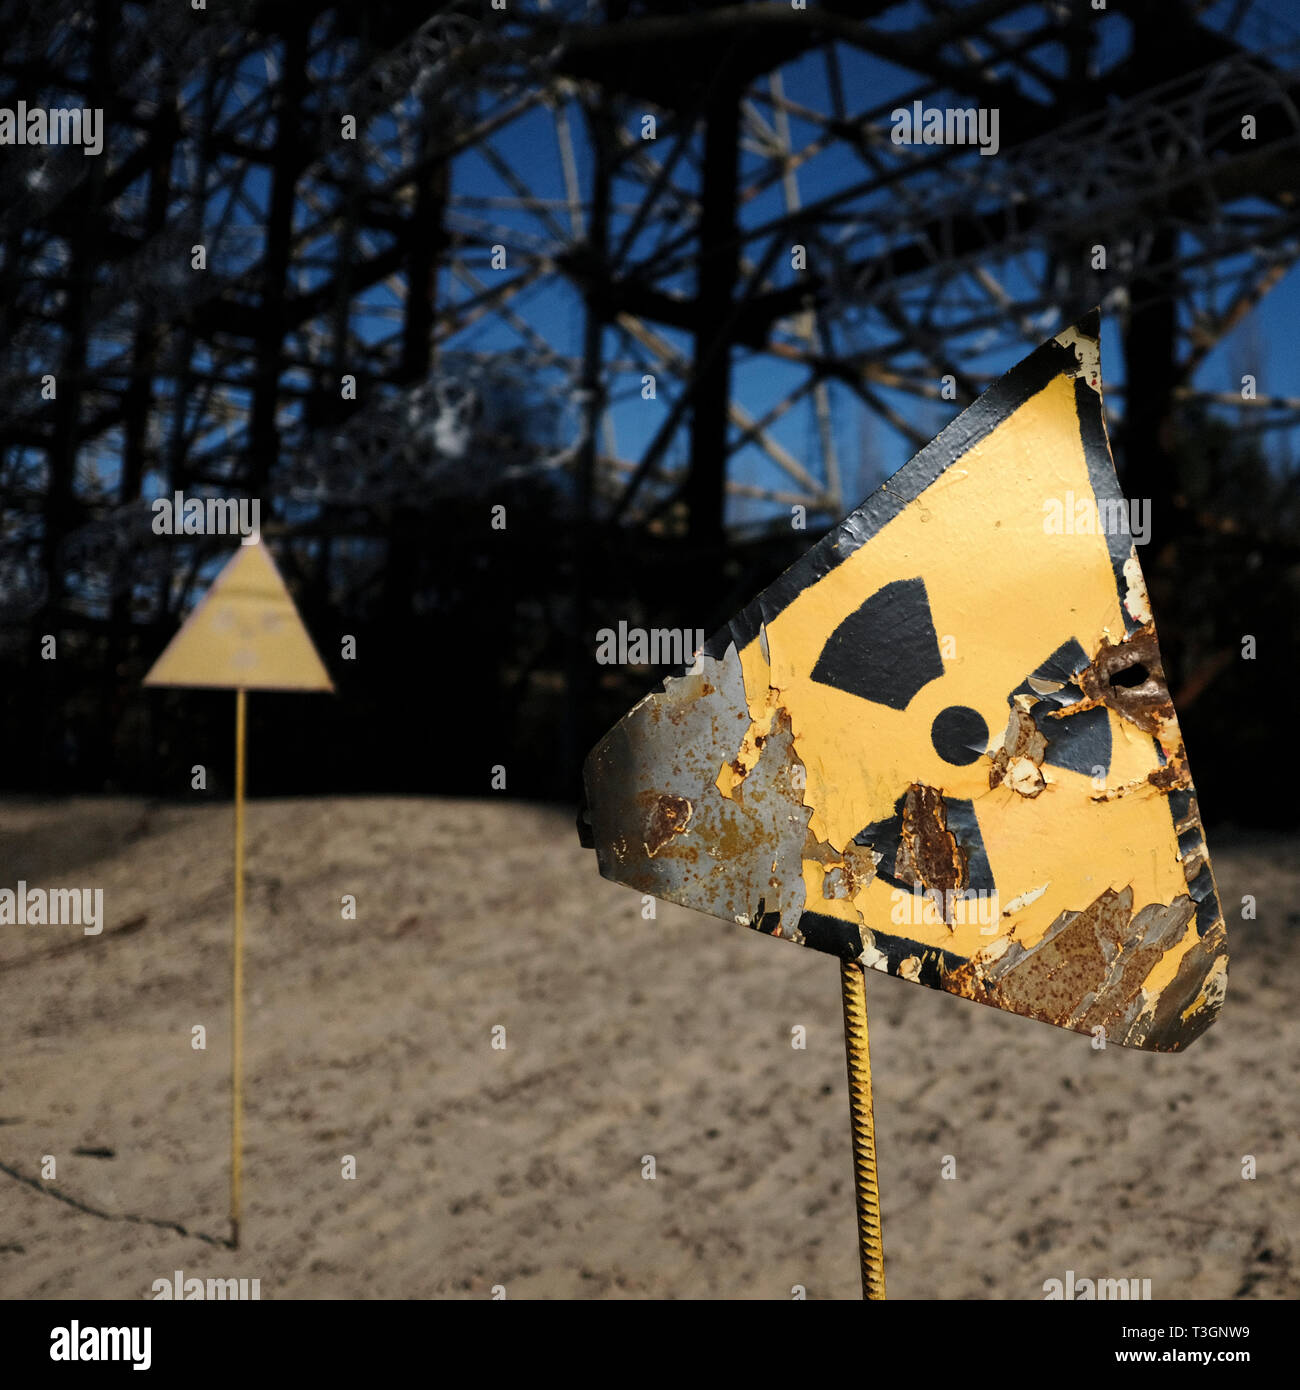 Radiation warning in the exclusion zone of Chernobyl, Ukraine, April 2019 Stock Photo